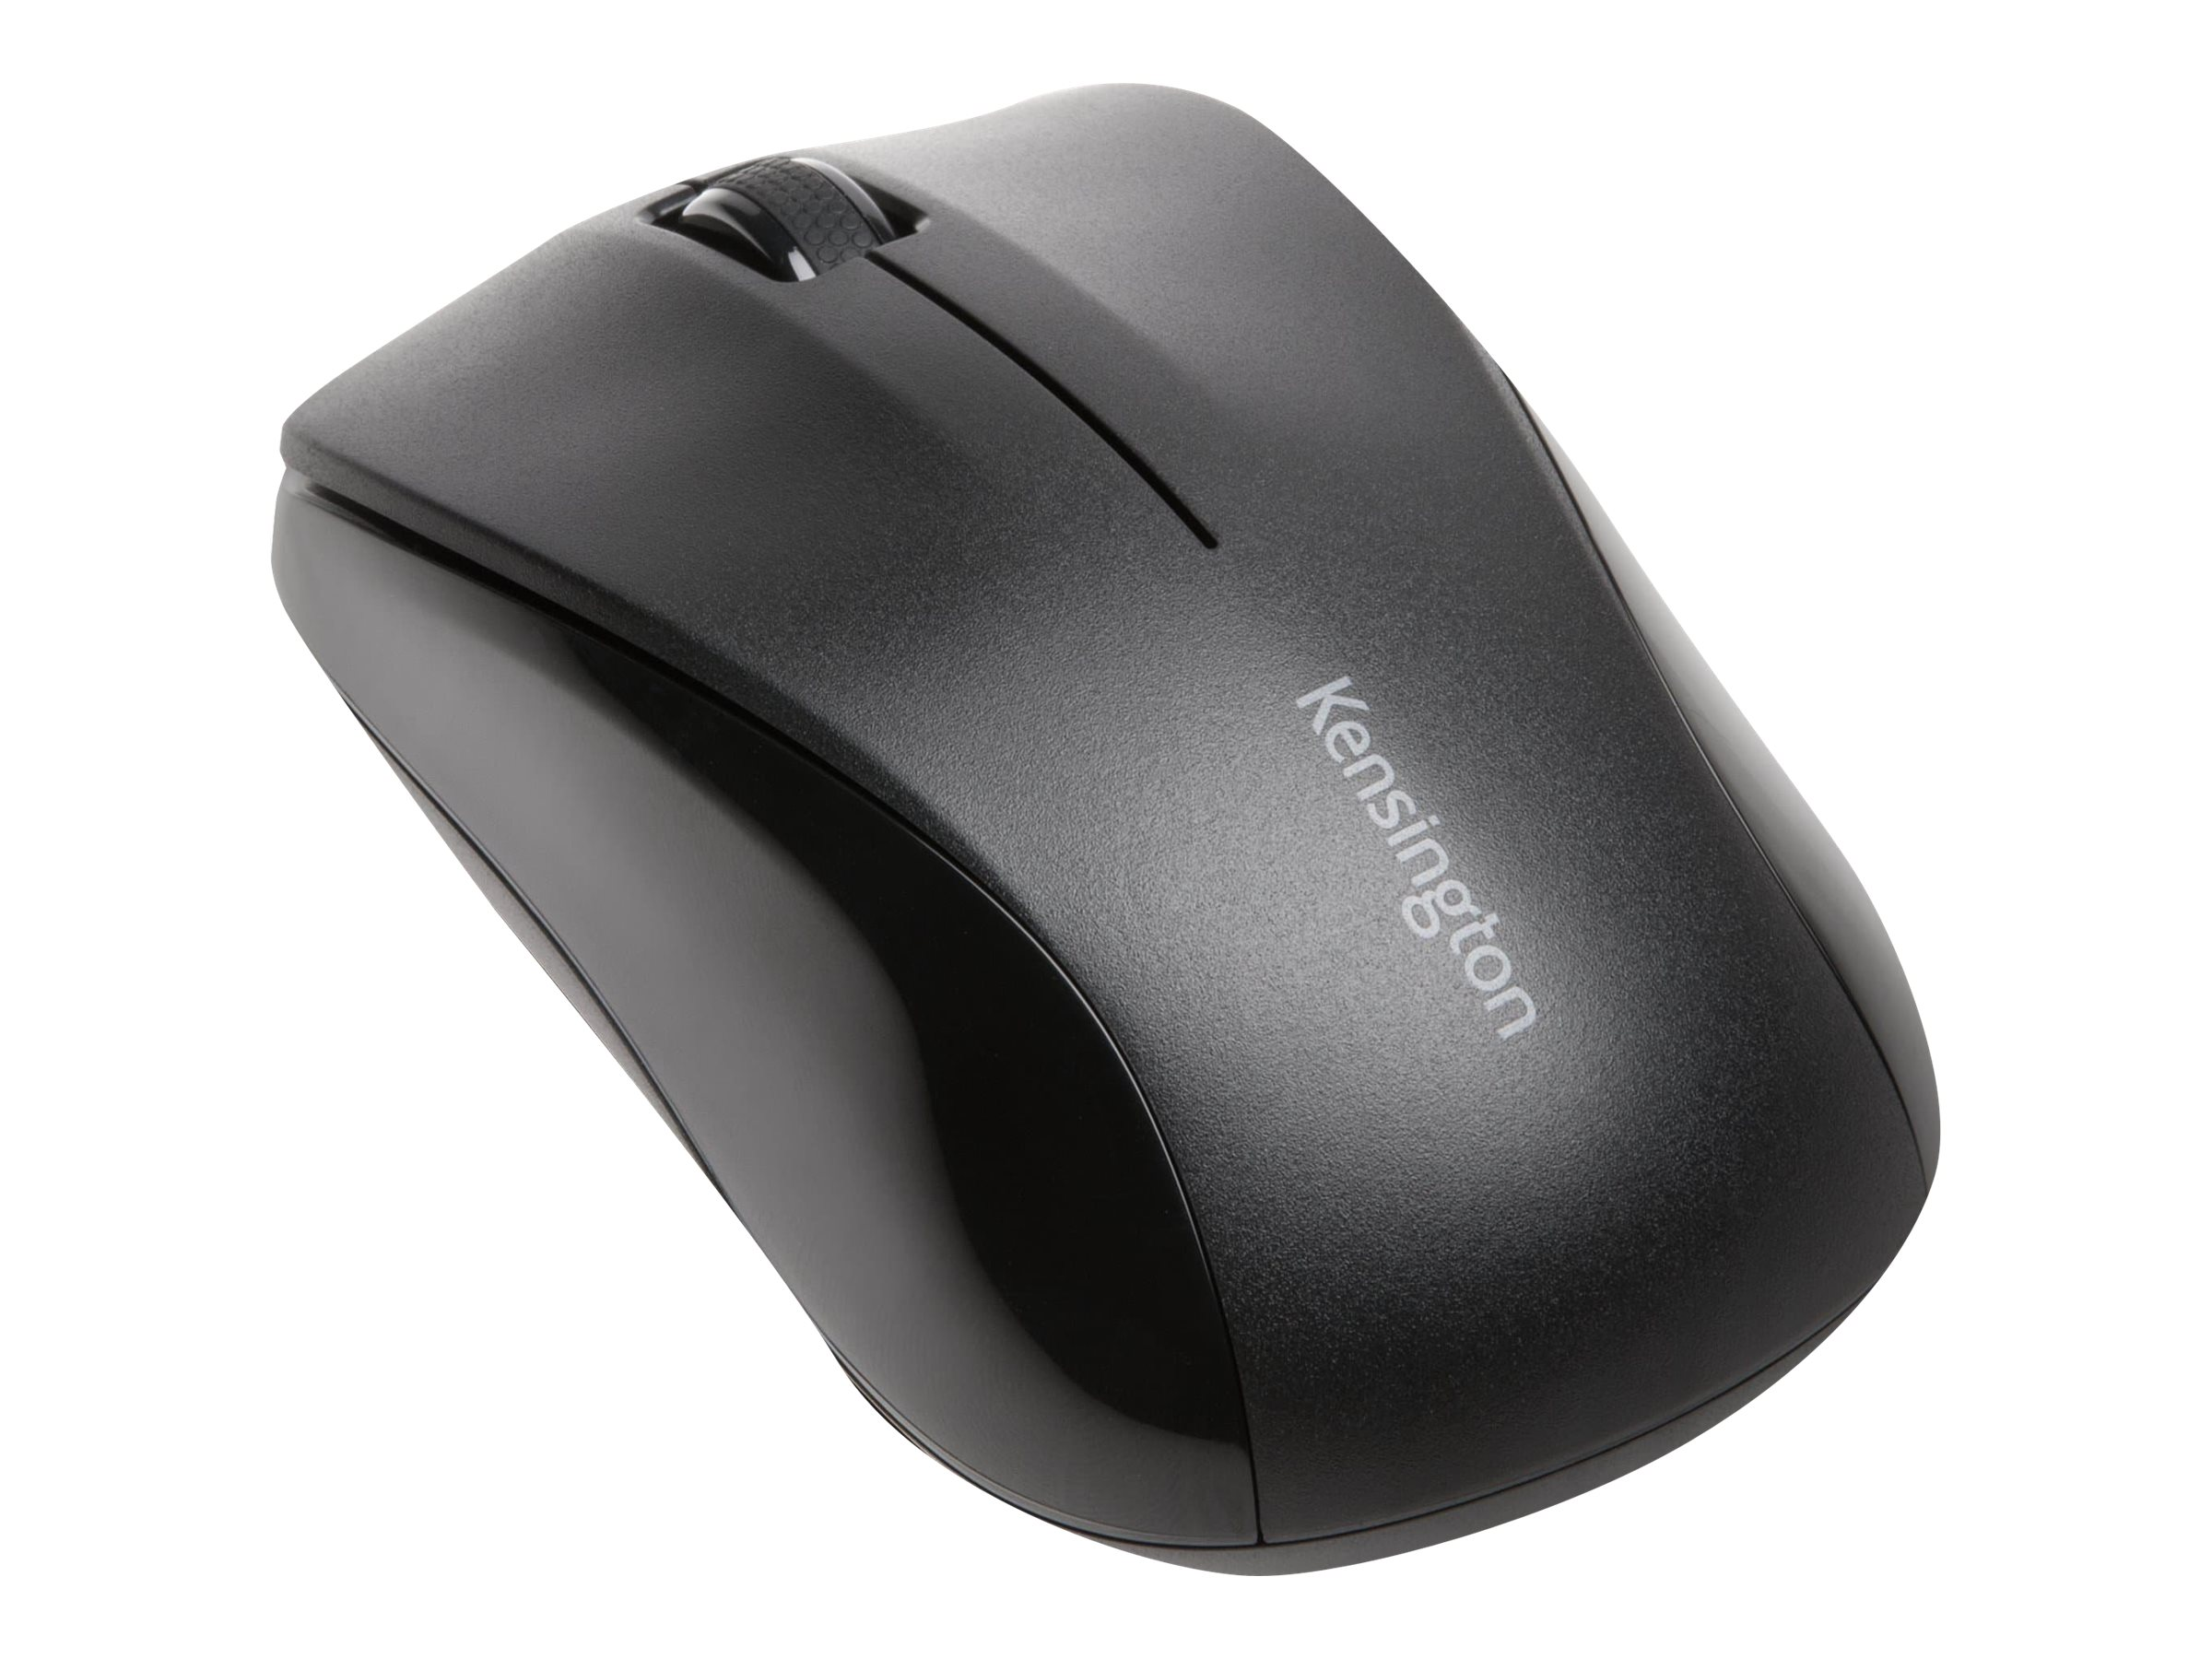 Kensington Mouse for Life Wireless 3-Button USB w  Scroll Wheel, K72392US, 23623673, Mice & Cursor Control Devices